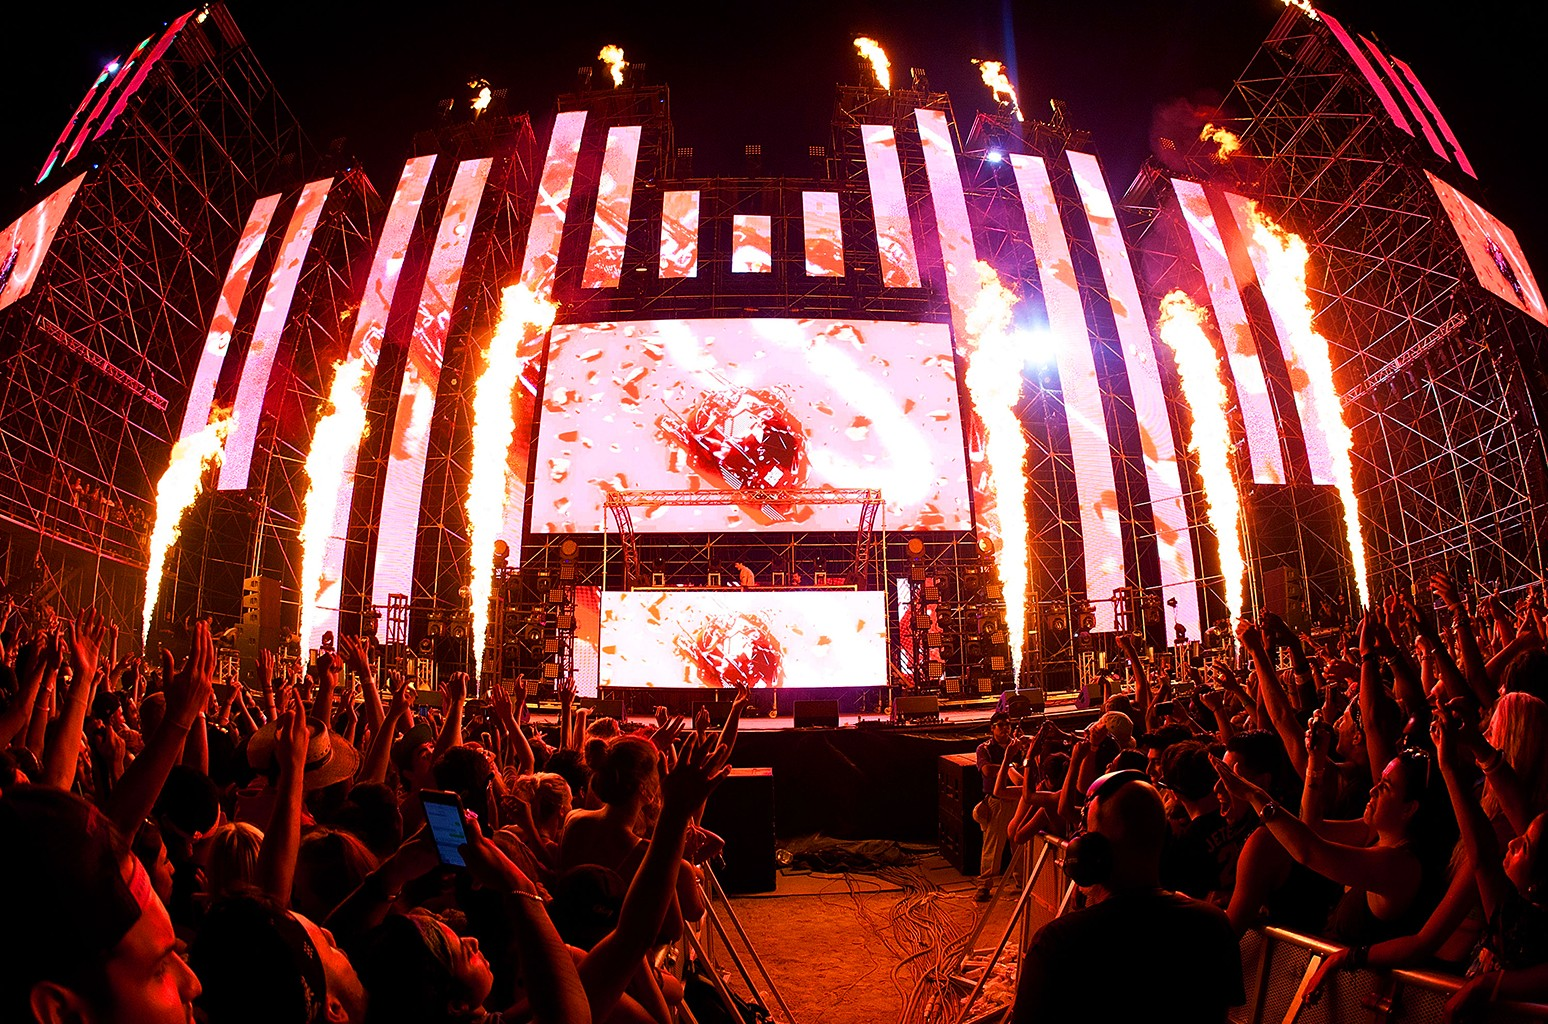 A general view of atmosphere and crowds at the HARD Summer Music Festival 2015 at Fairplex on Aug. 2, 2015 in Pomona, Calif.